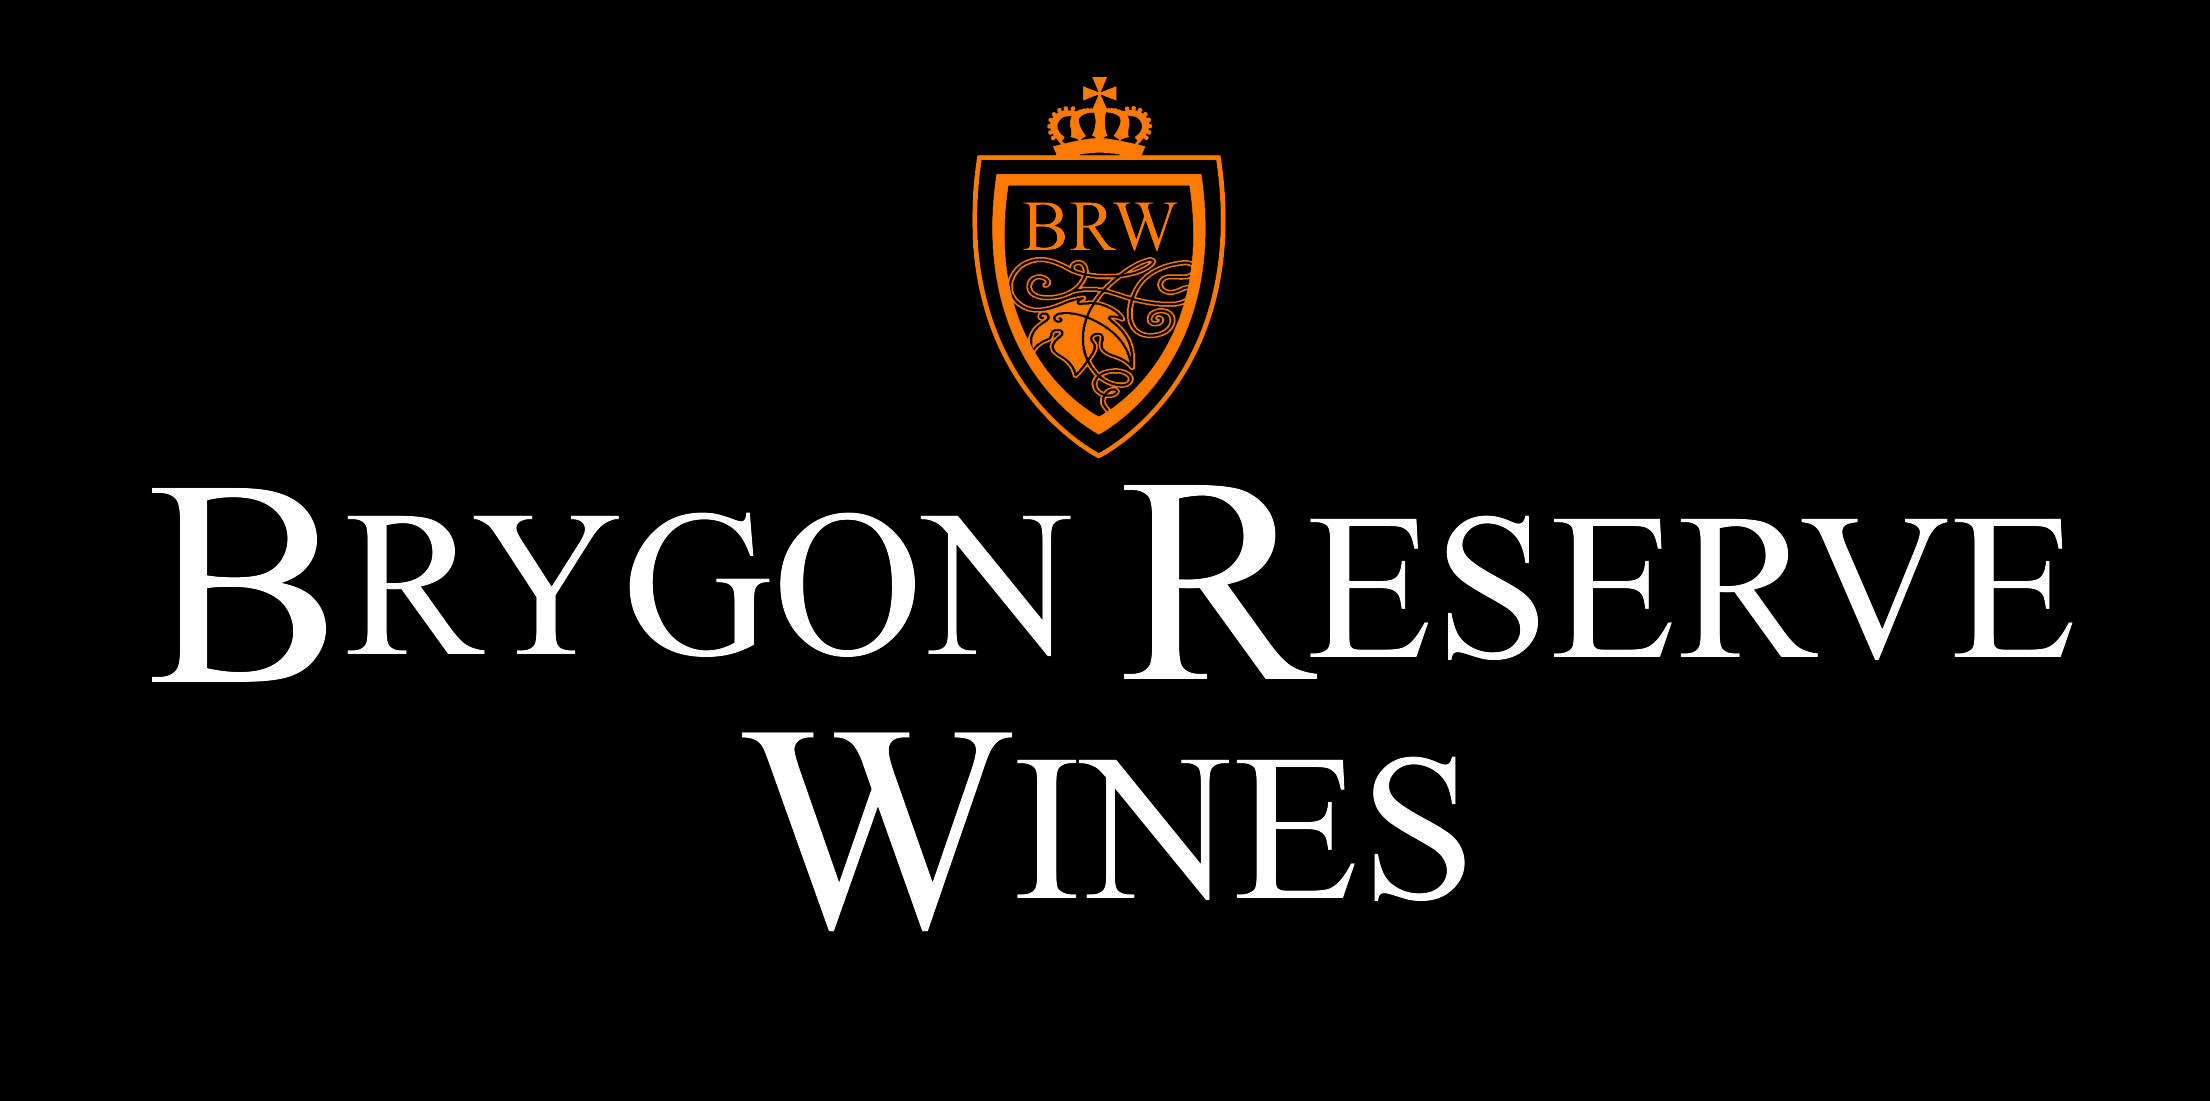 Brygon Reserve Wines Store